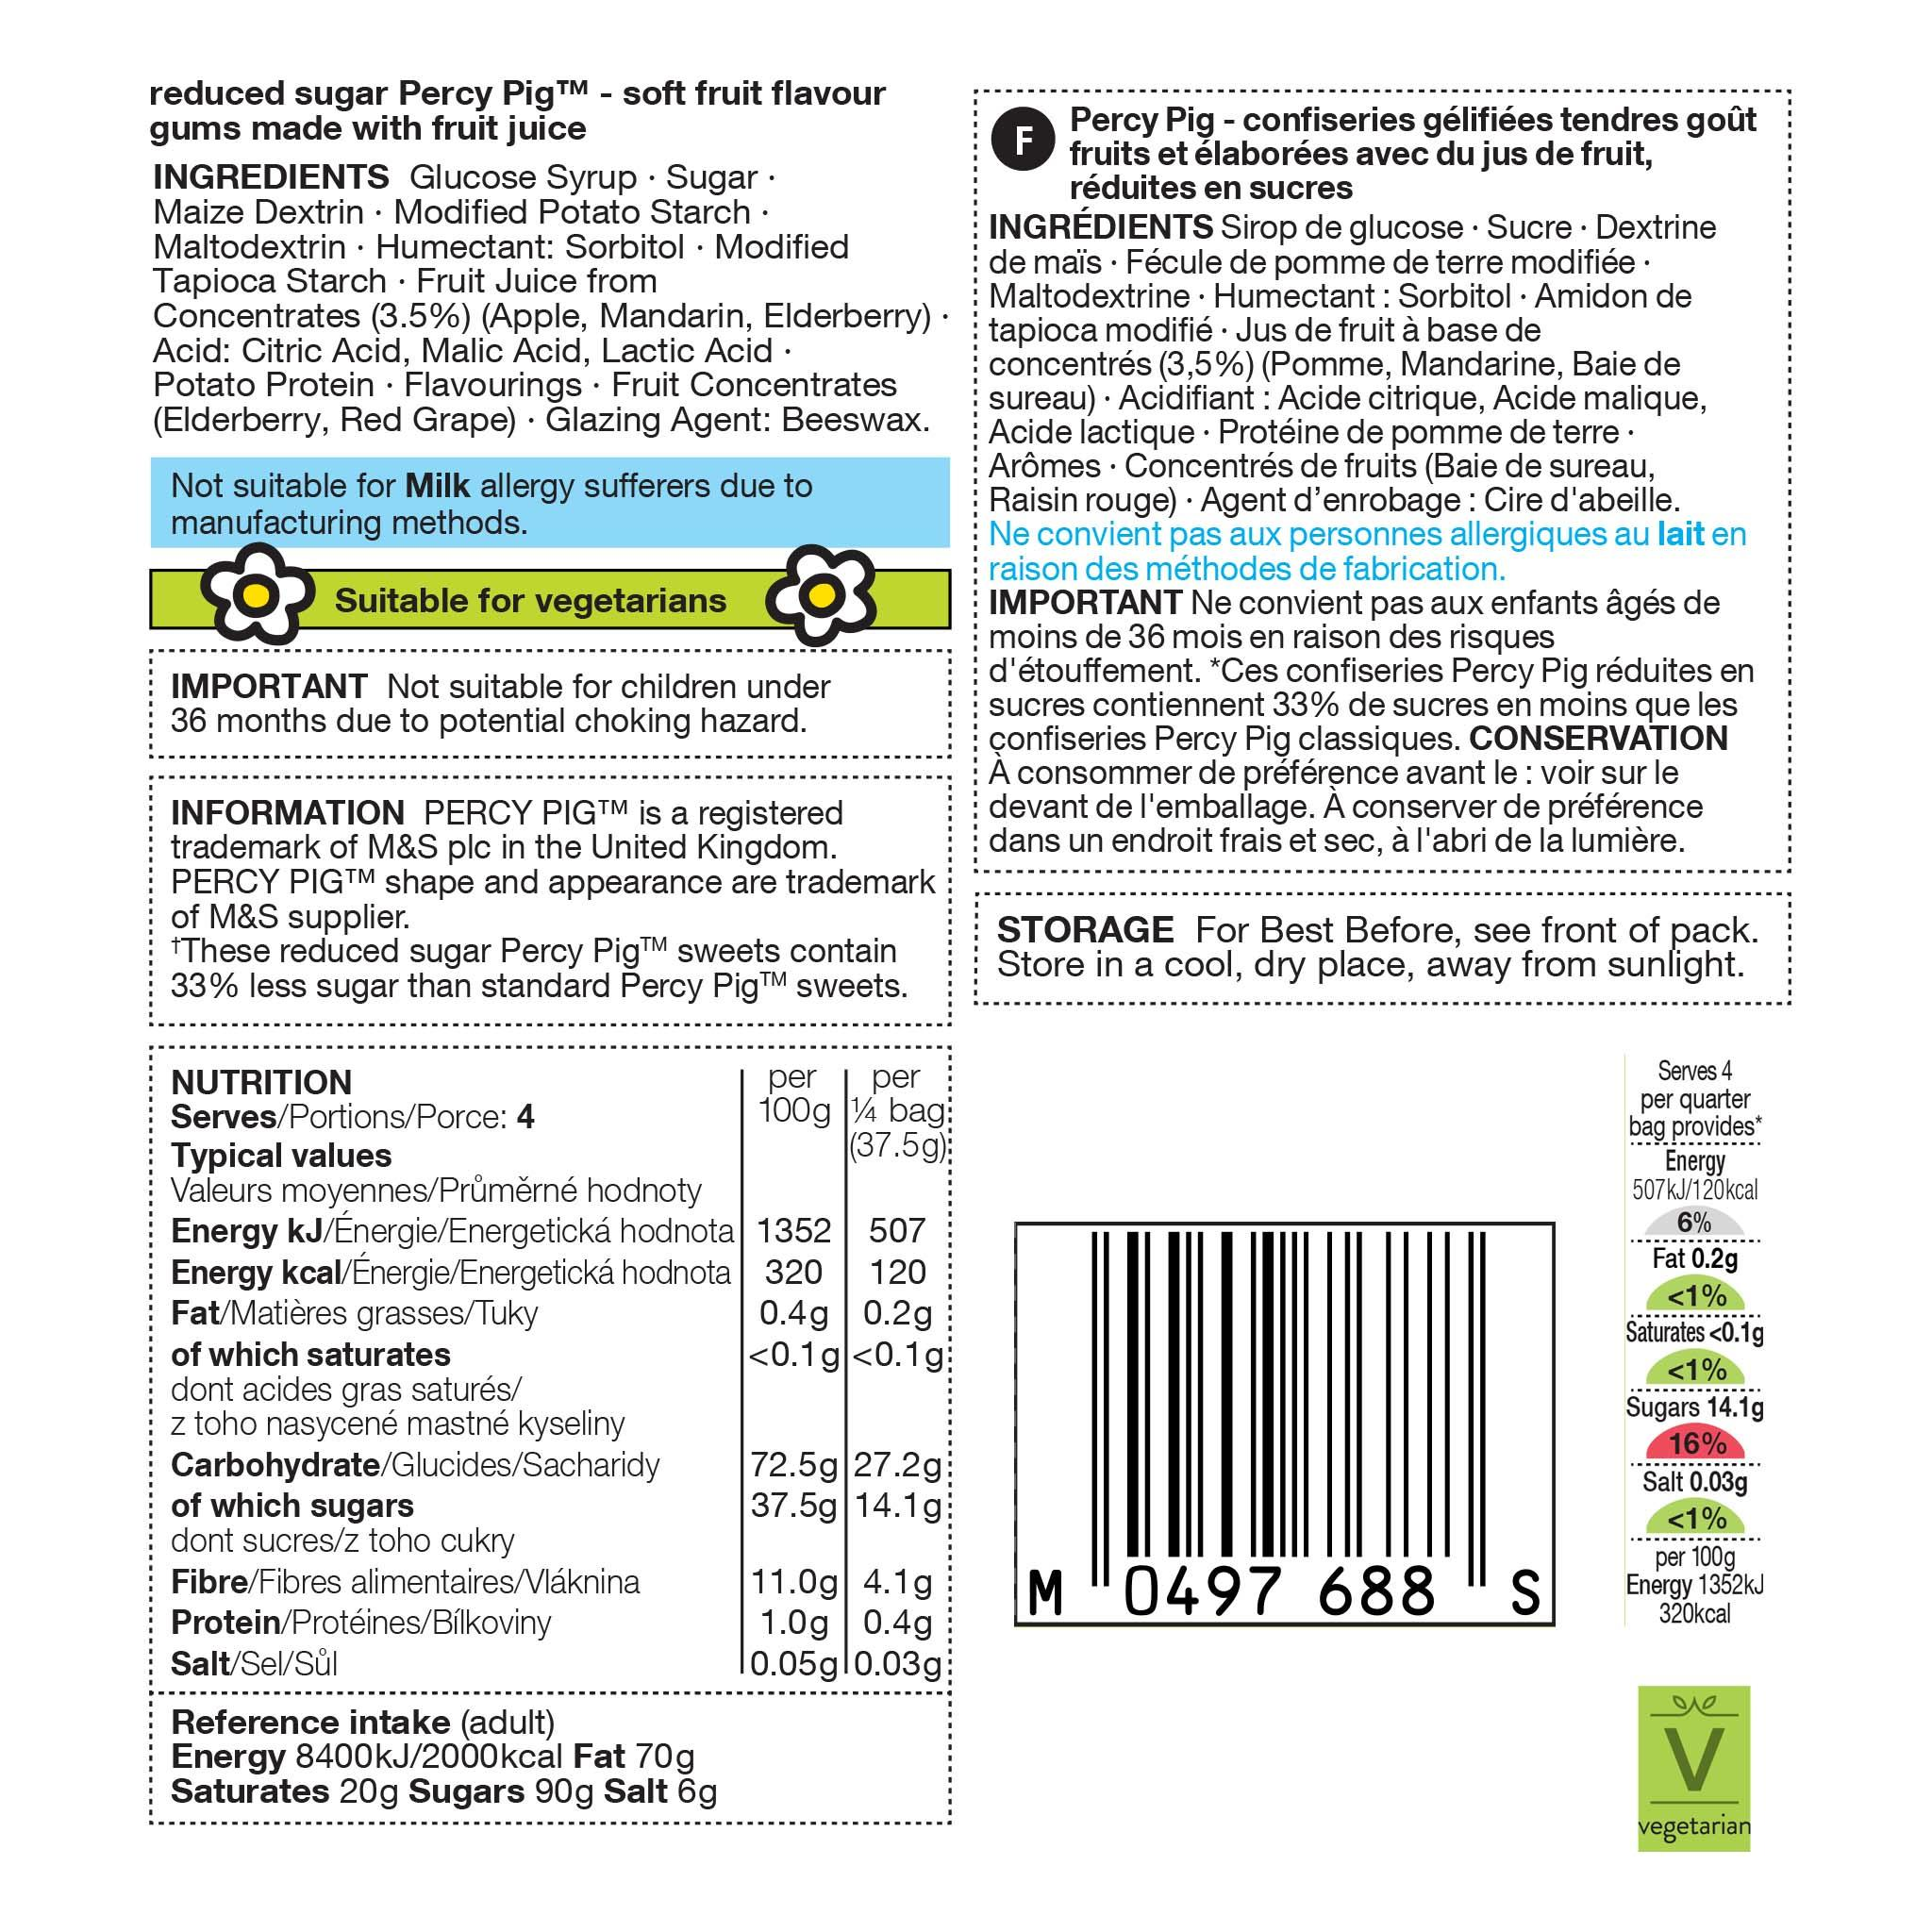 Reduced Sugar Percy 150g Label